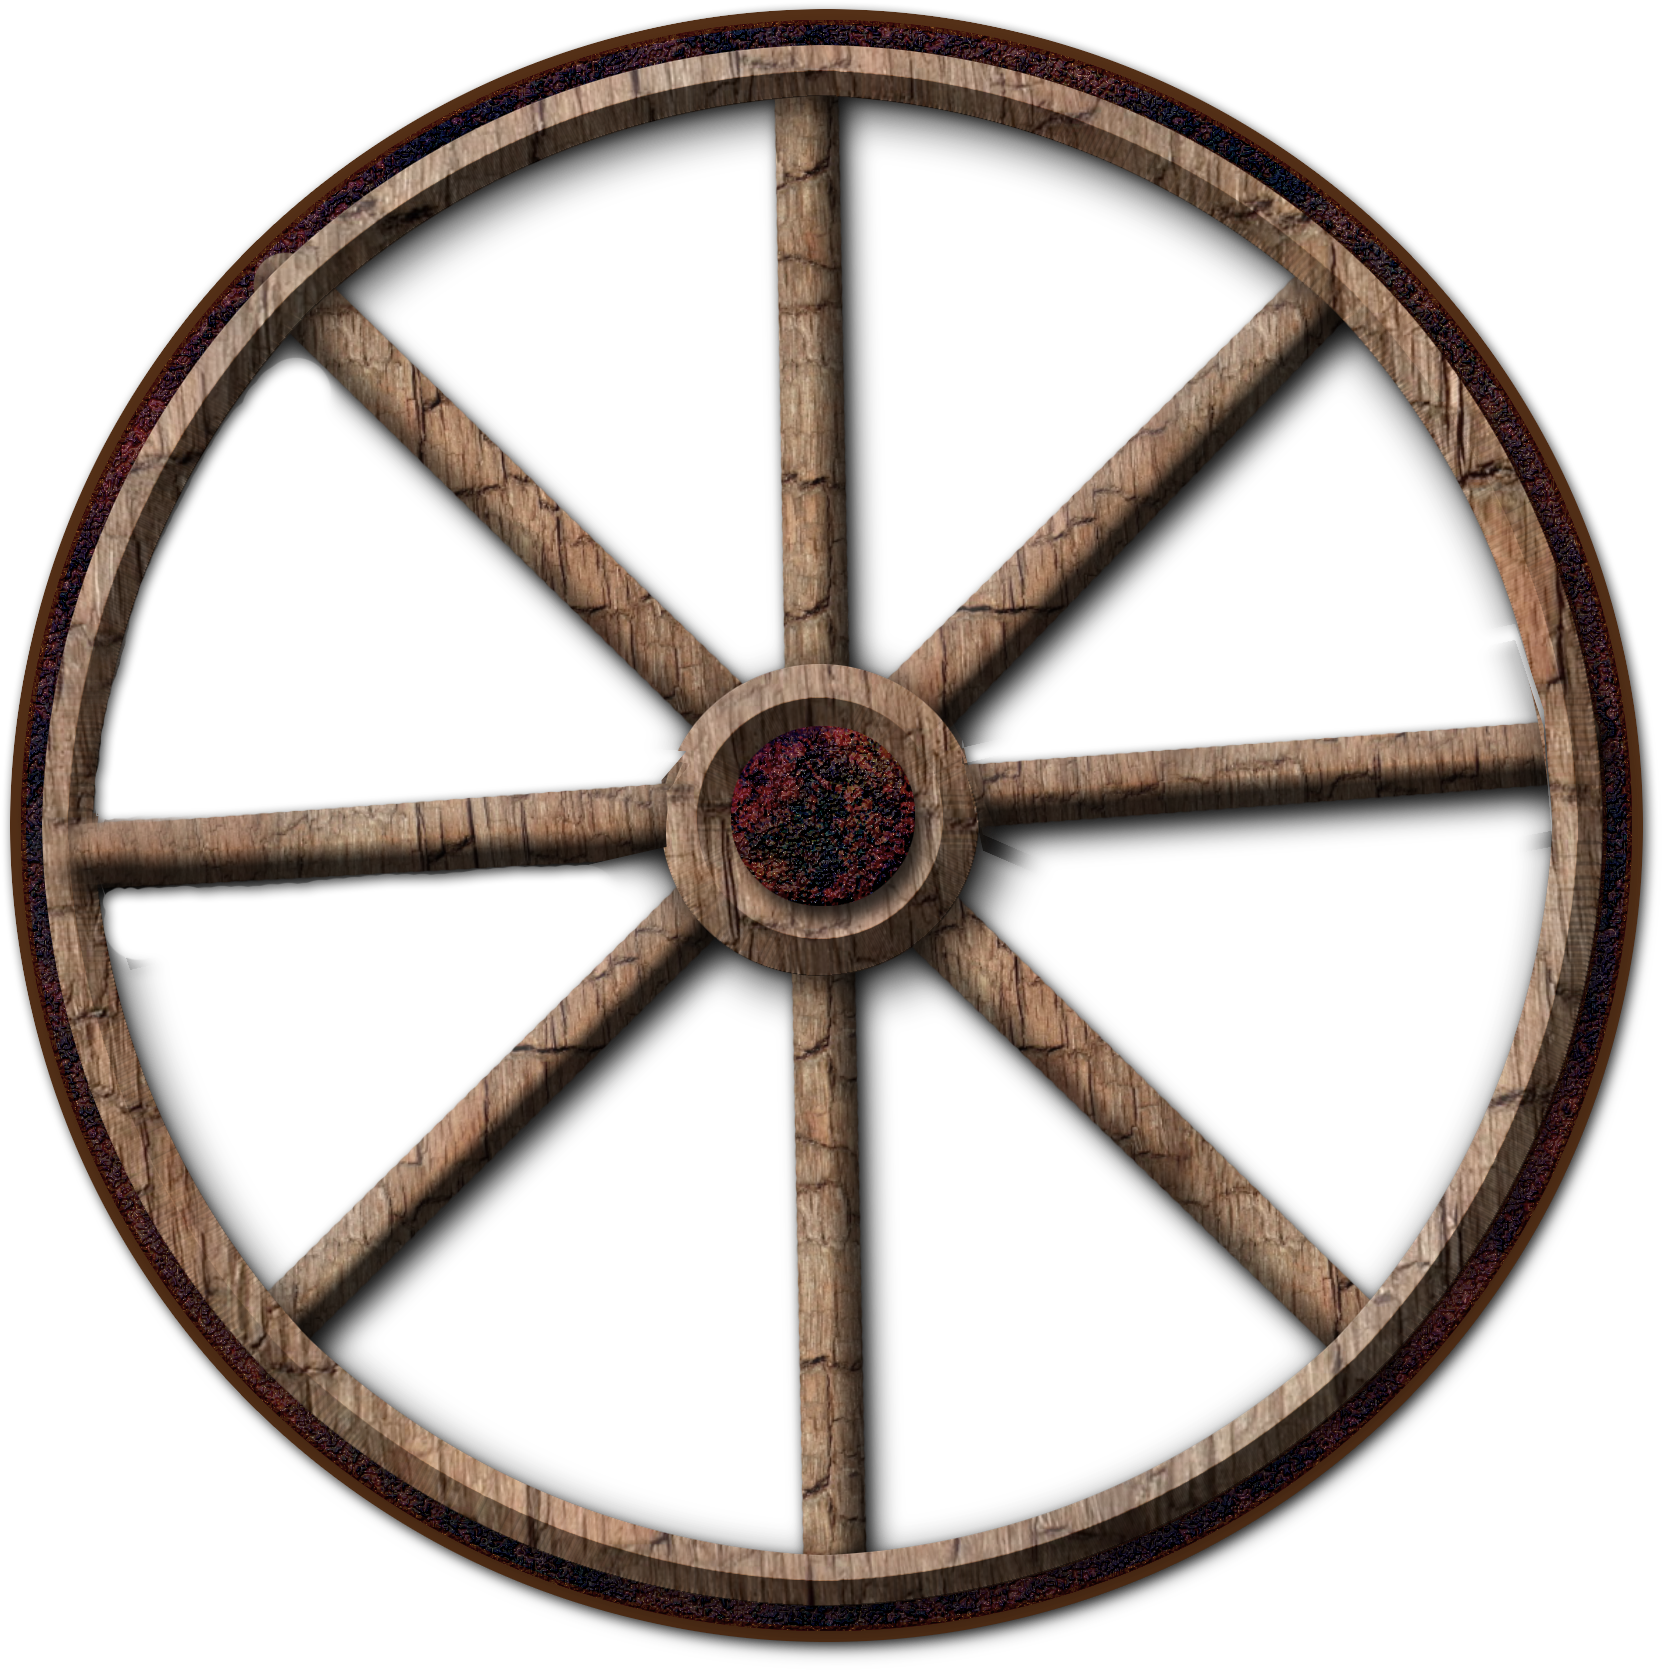 Spoked Wheel Stock Illustrations, Cliparts And Royalty Free Spoked Wheel  Vectors